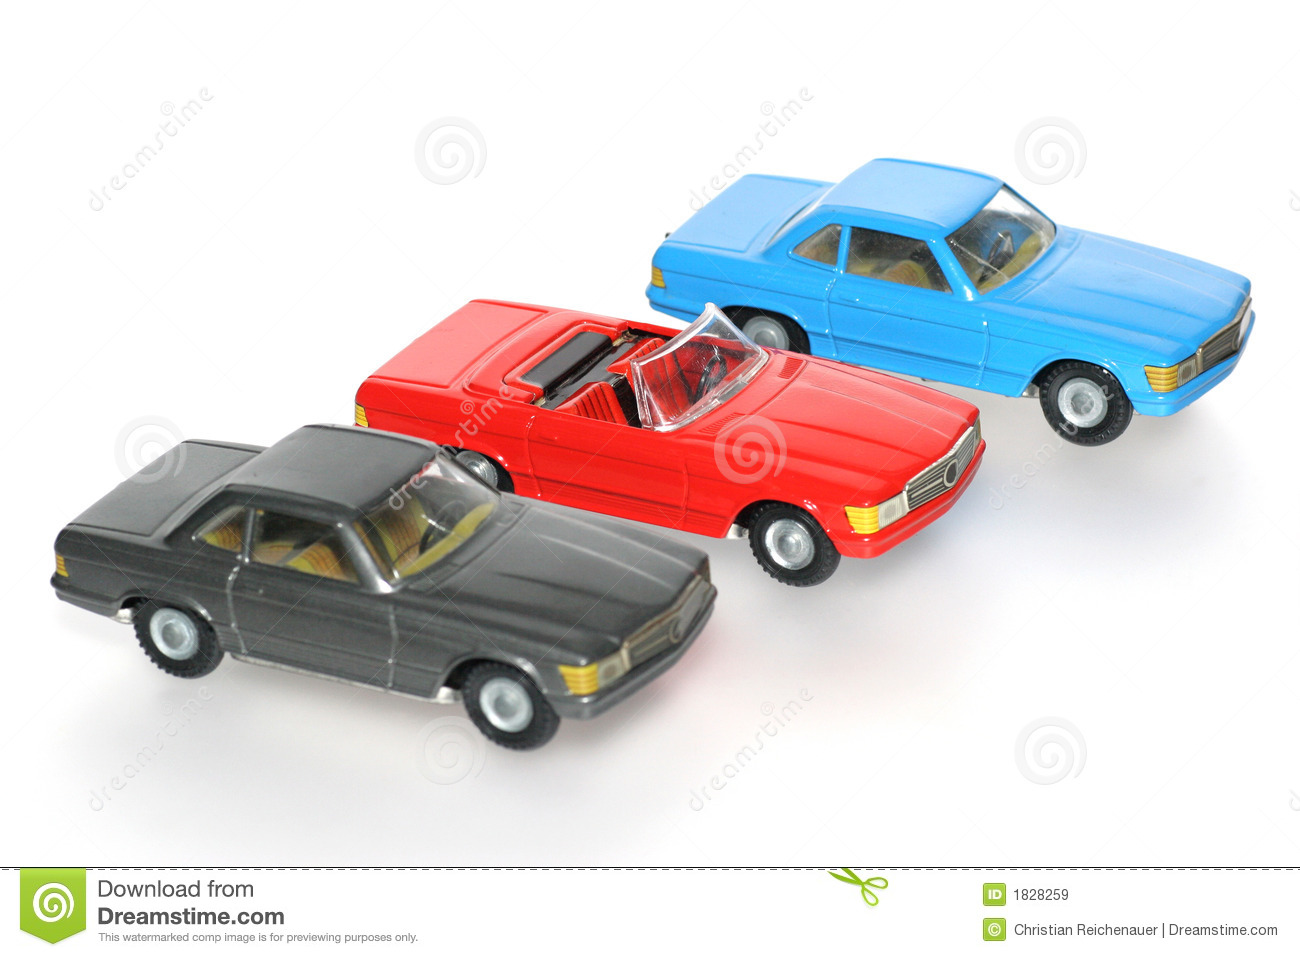 Toy Cars For Toys : Three classic mercedes toy cars royalty free stock images